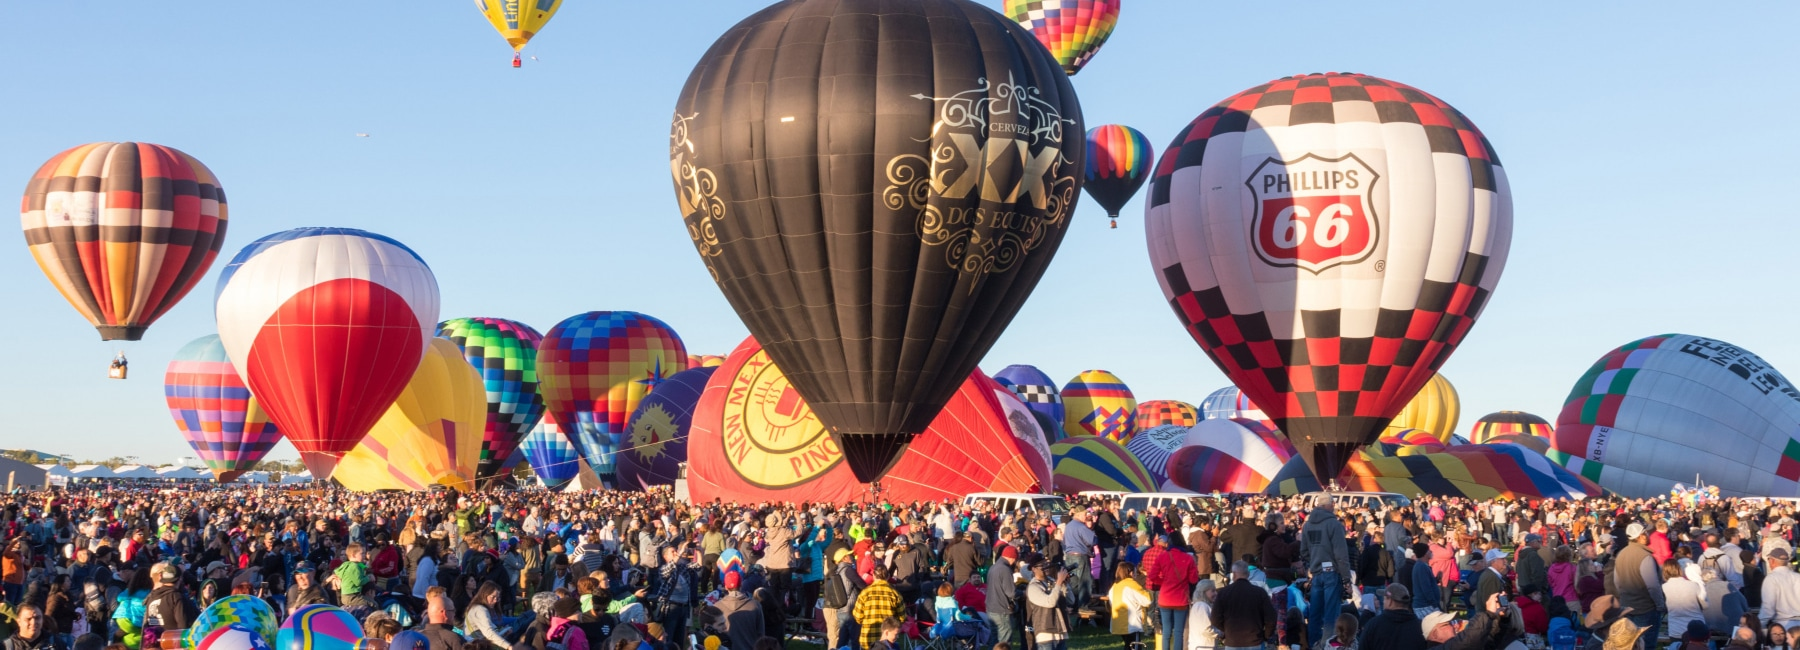 Balloon Fiesta Mobile App